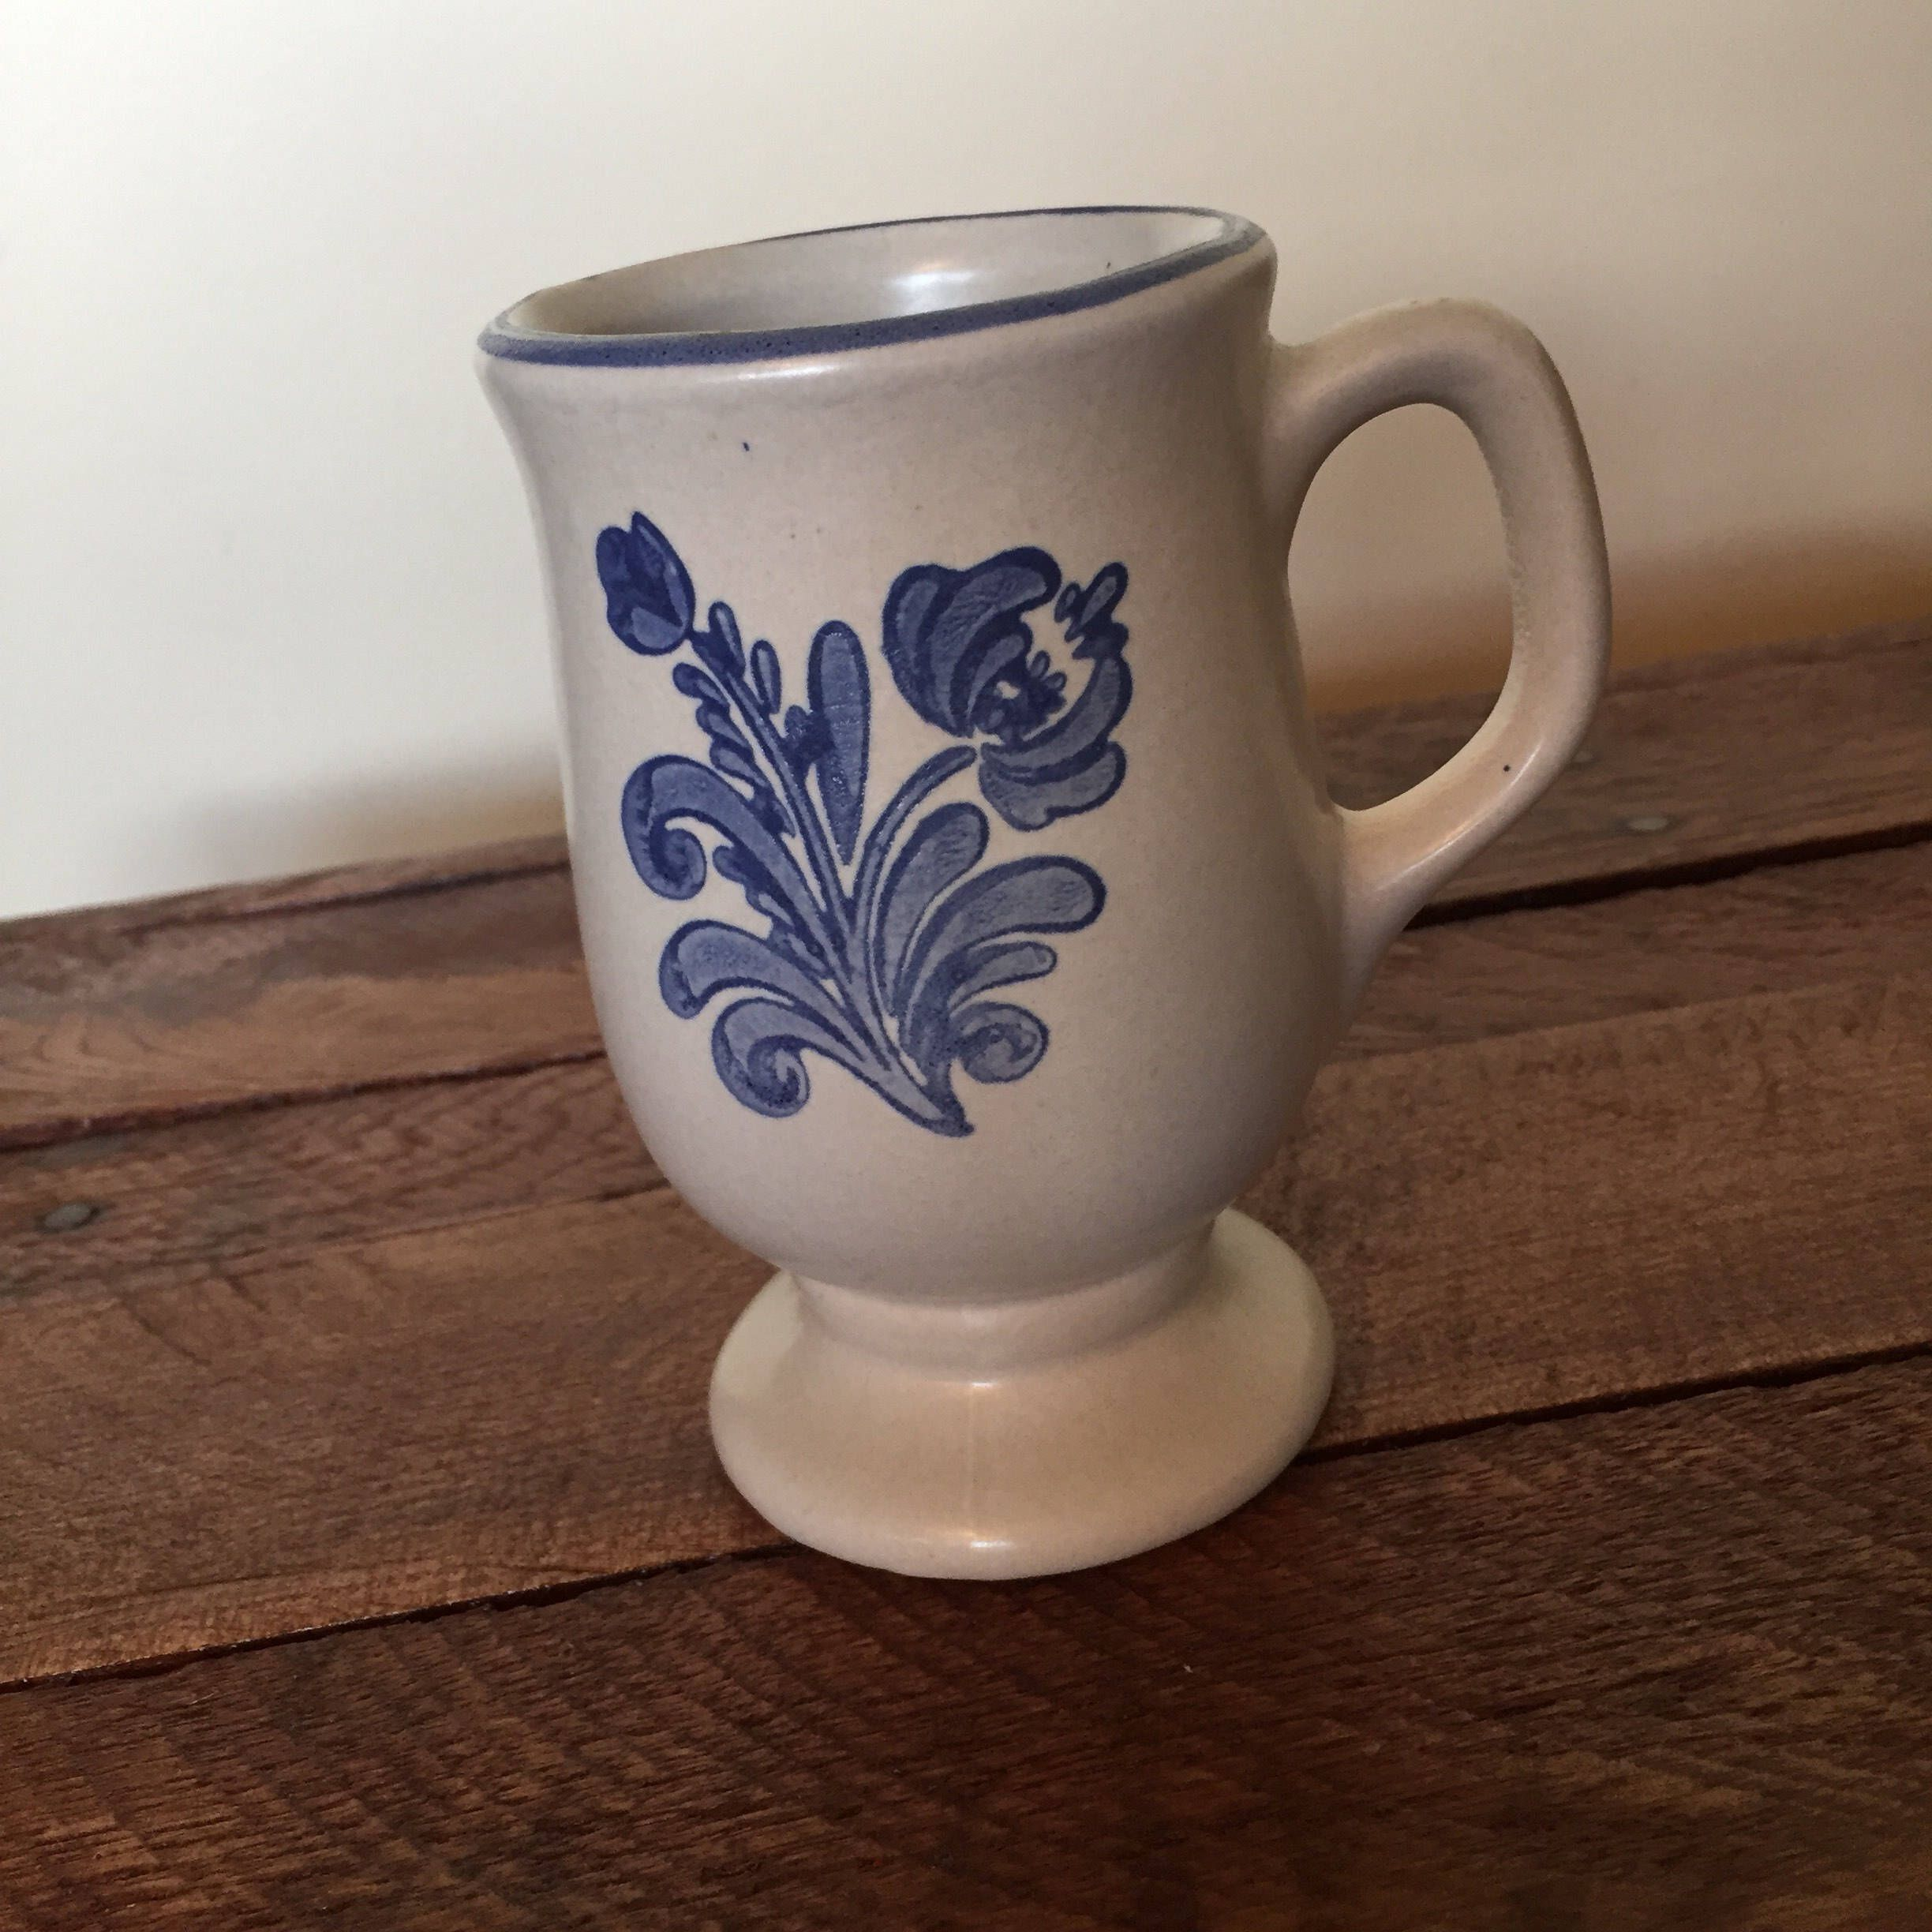 prodigious Pfaltzgraff Vintage Floral Part - 7: Iconic Vintage Pfaltzgraff Mug in the Historic Yorktown pattern 1960s White  and Blue Floral Mug by